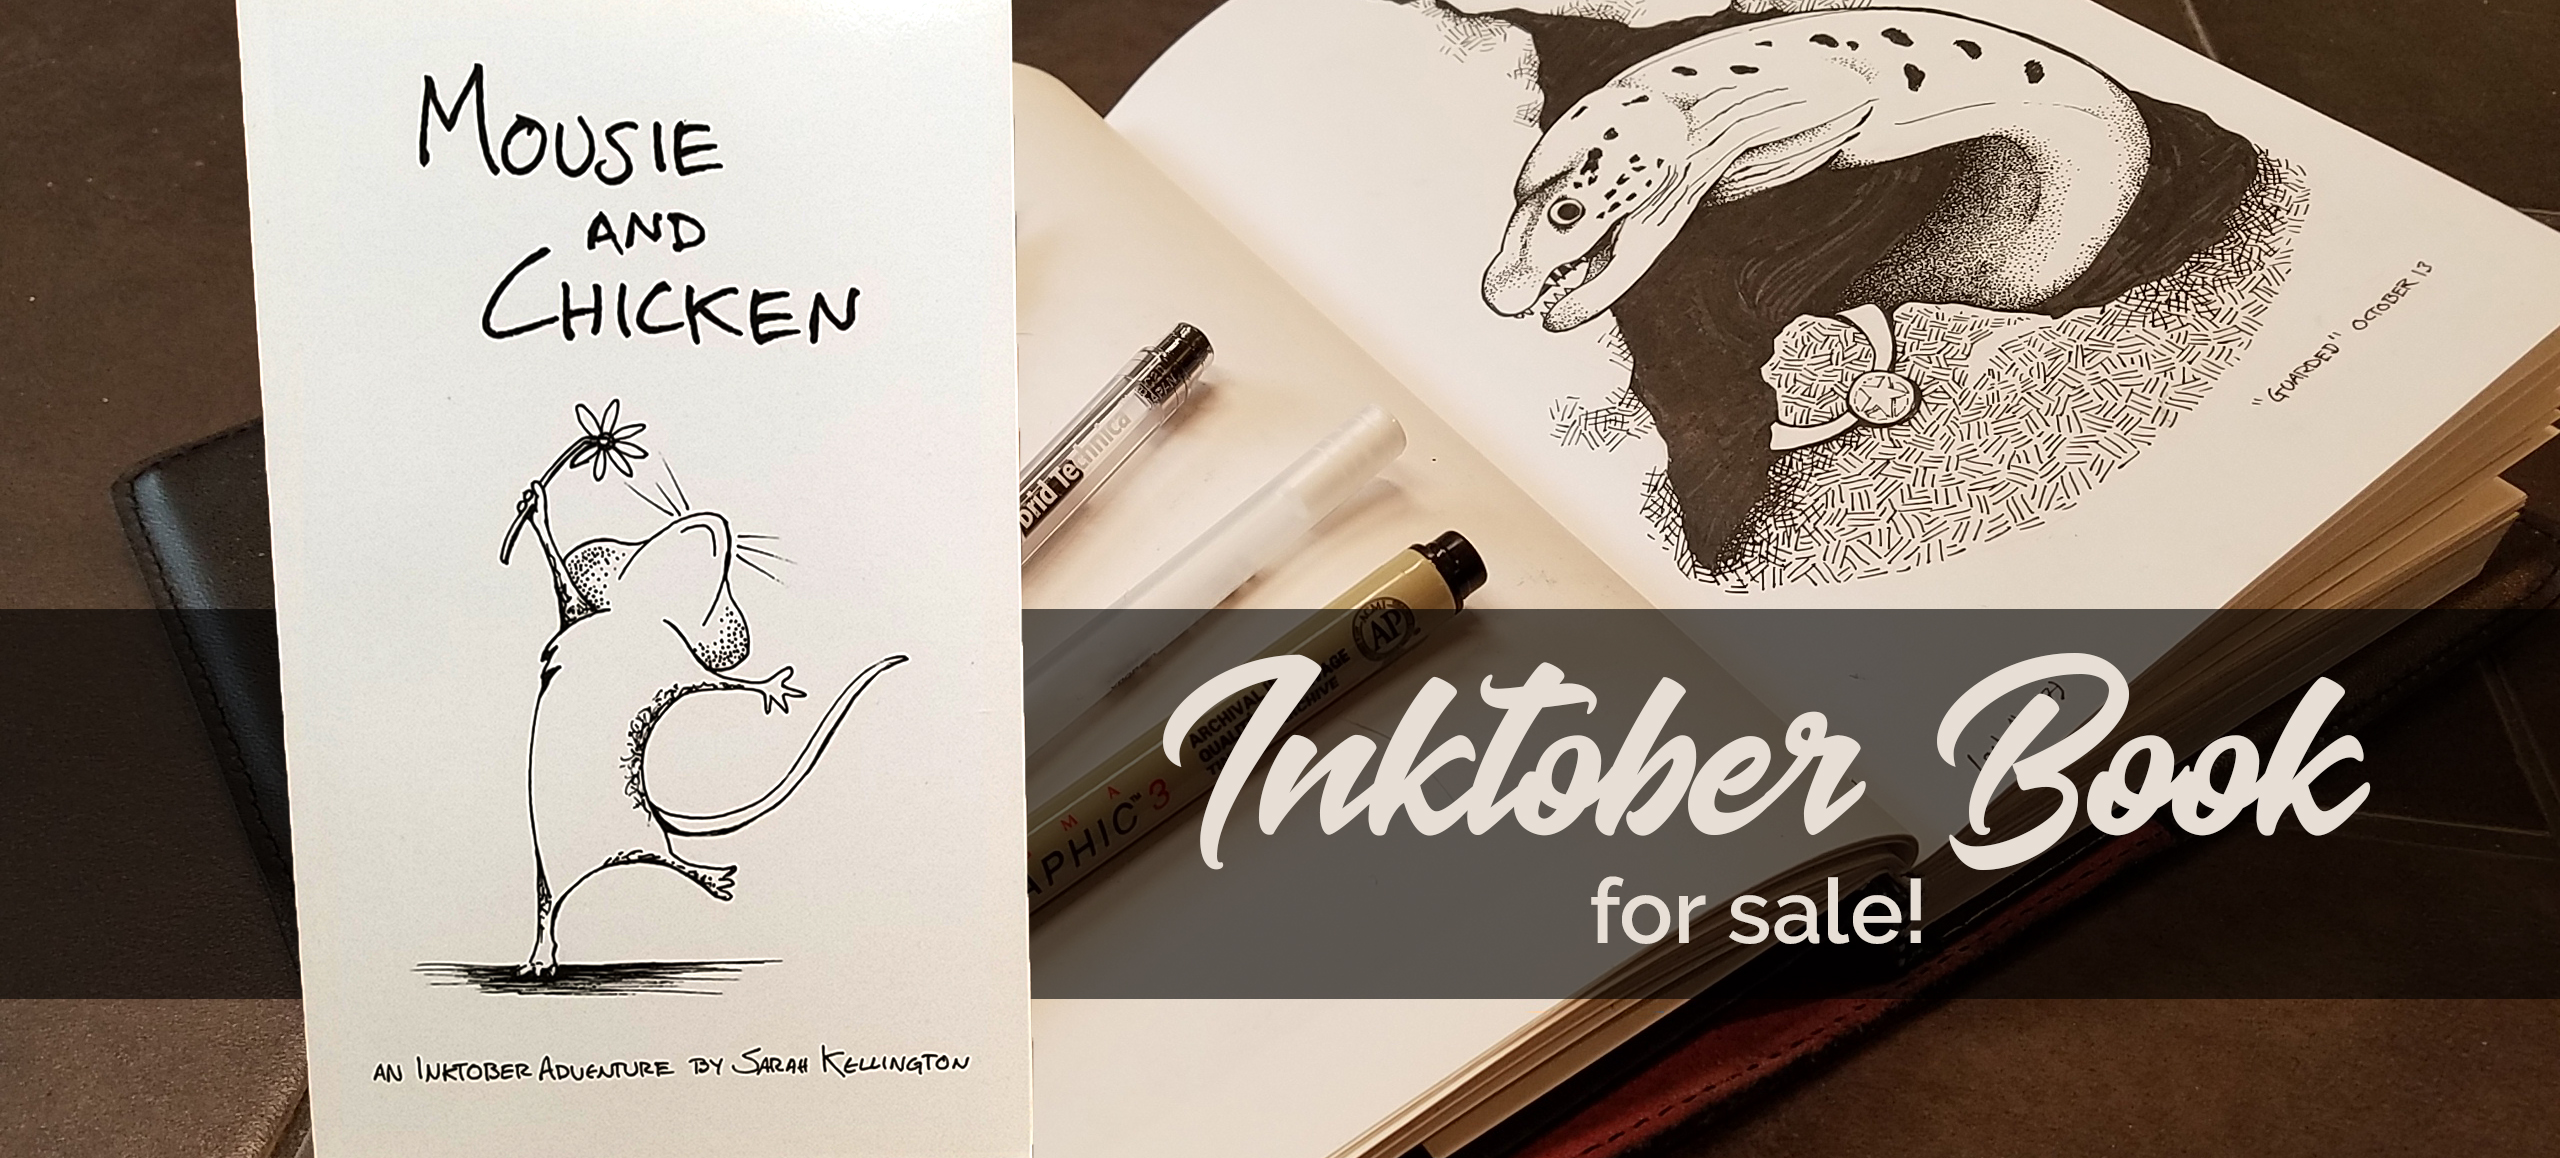 Mousie and Chicken: Inktober drawings now a book